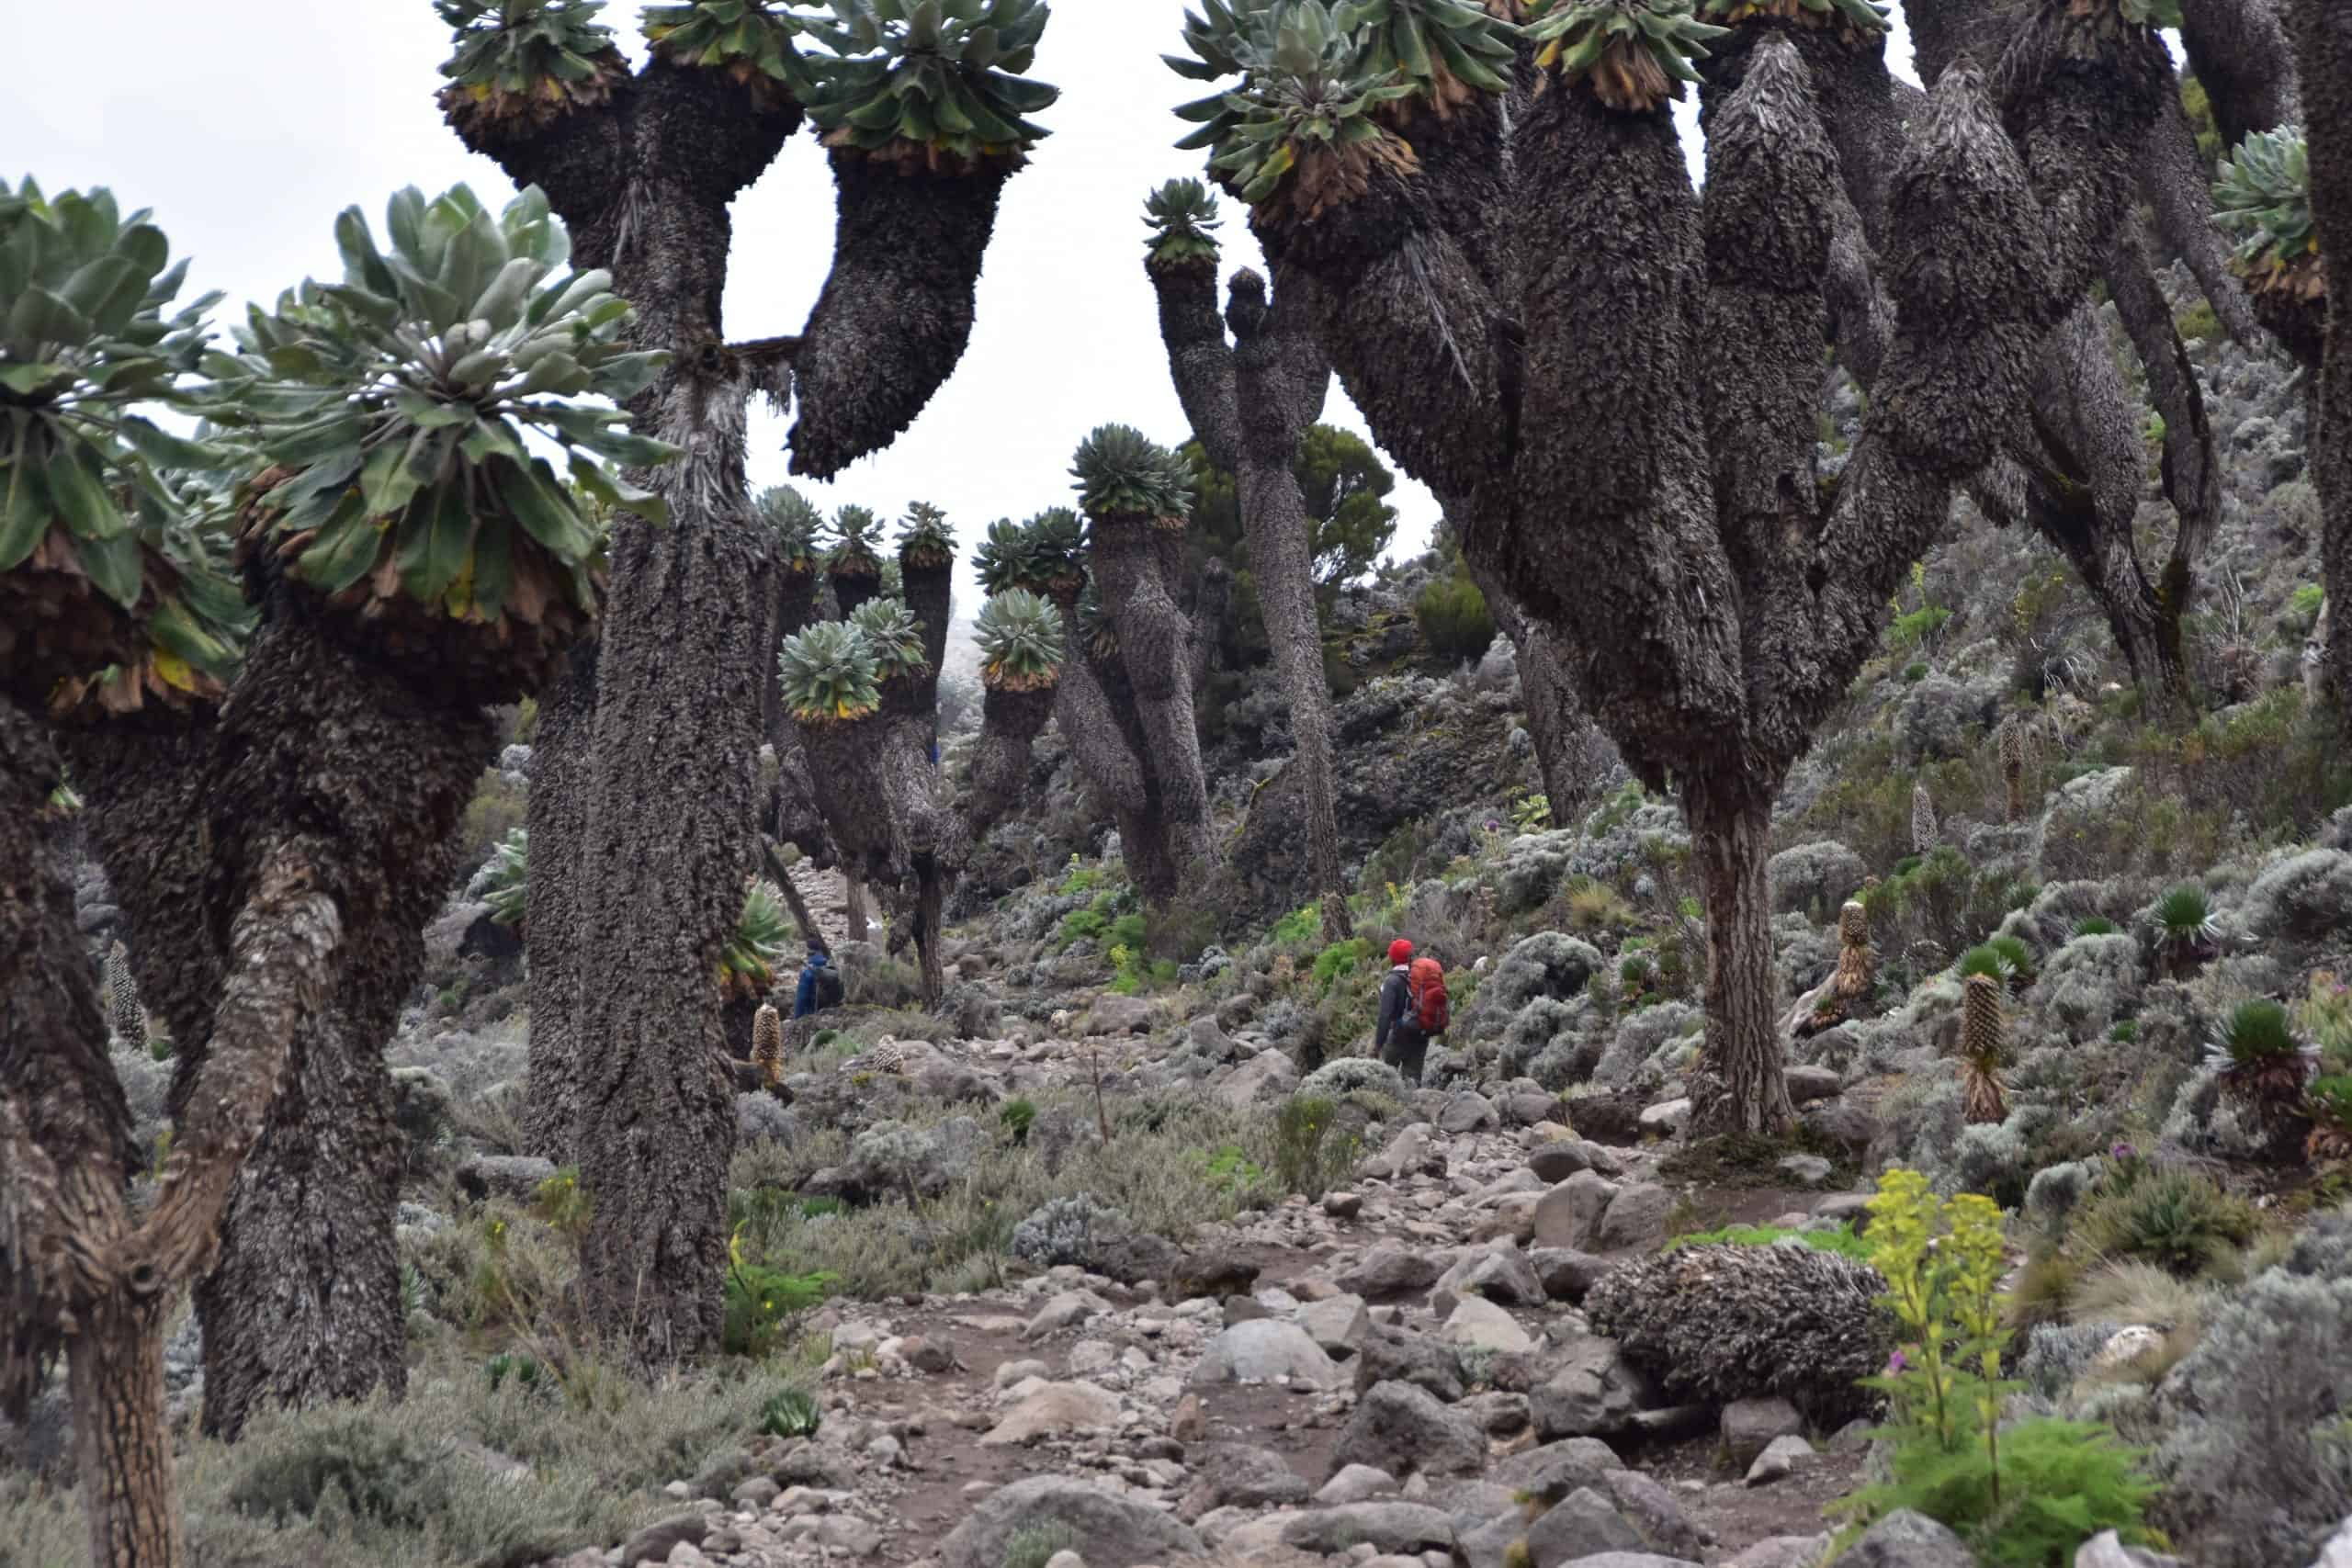 A guide in red hat and with an orange rucksack is dwarfed by the giant groundsels (or senecios) above Kilimanjaro's Barranco Campsite